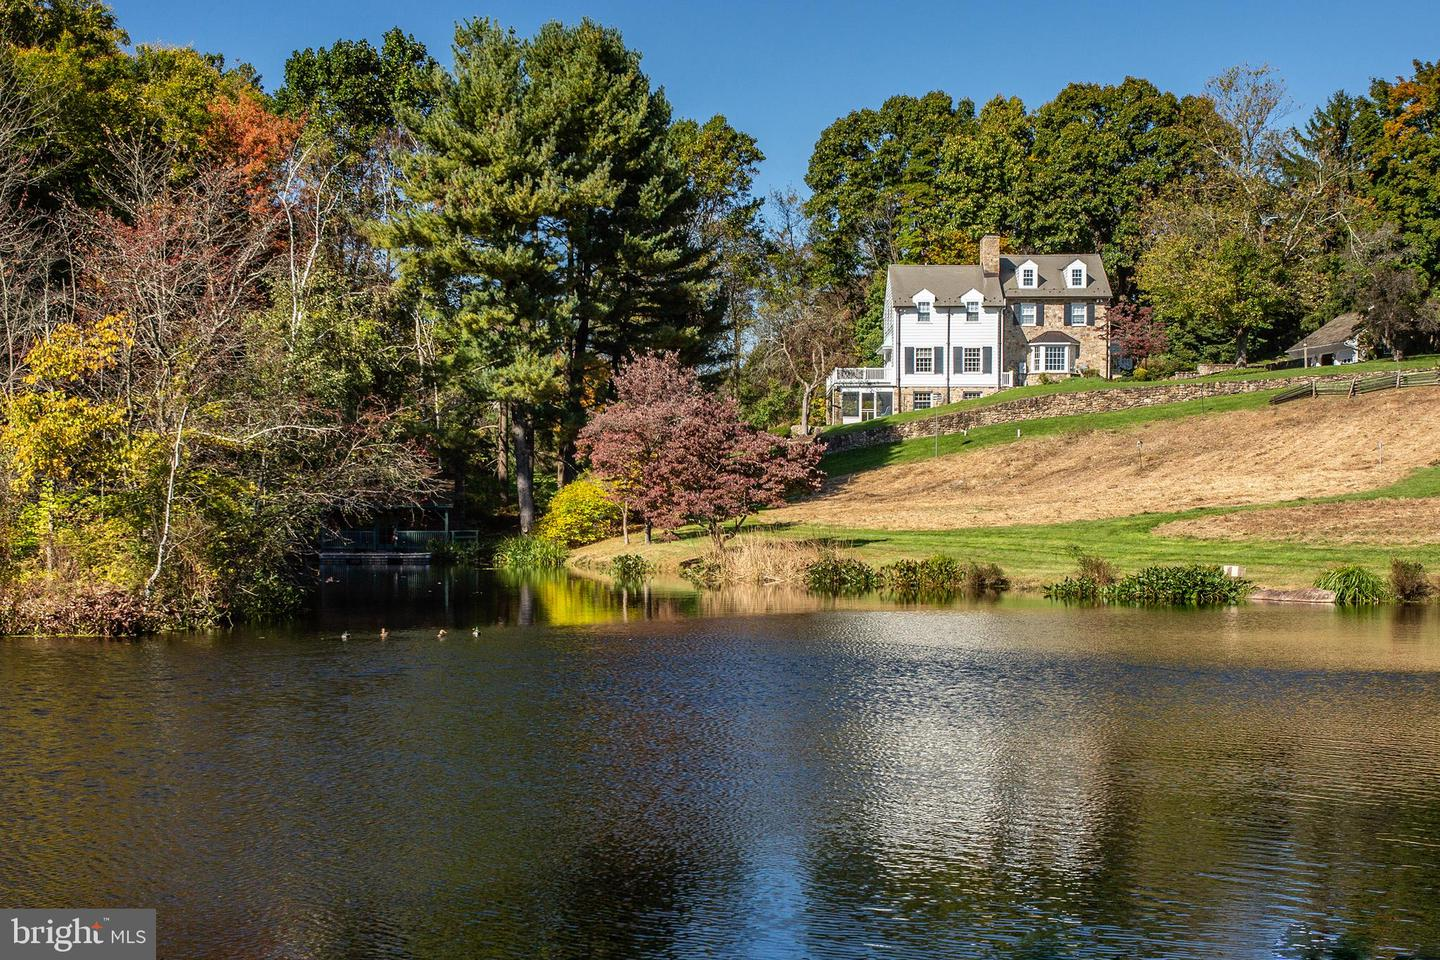 6131 Greenhill Rd New Hope, PA 18938